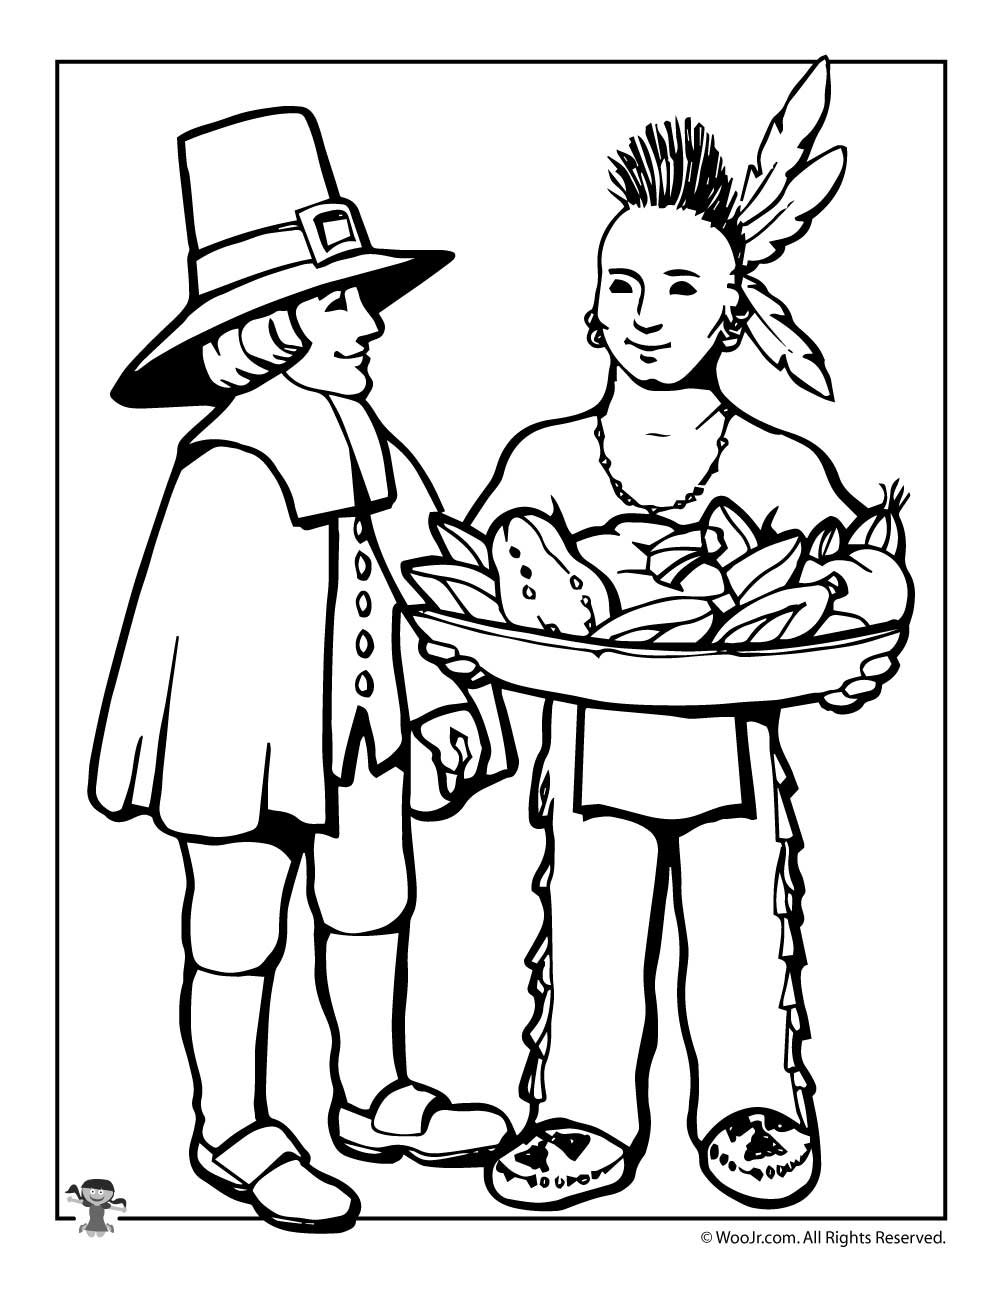 Pilgrim & Indian Coloring Page | Woo! Jr. Kids Activities